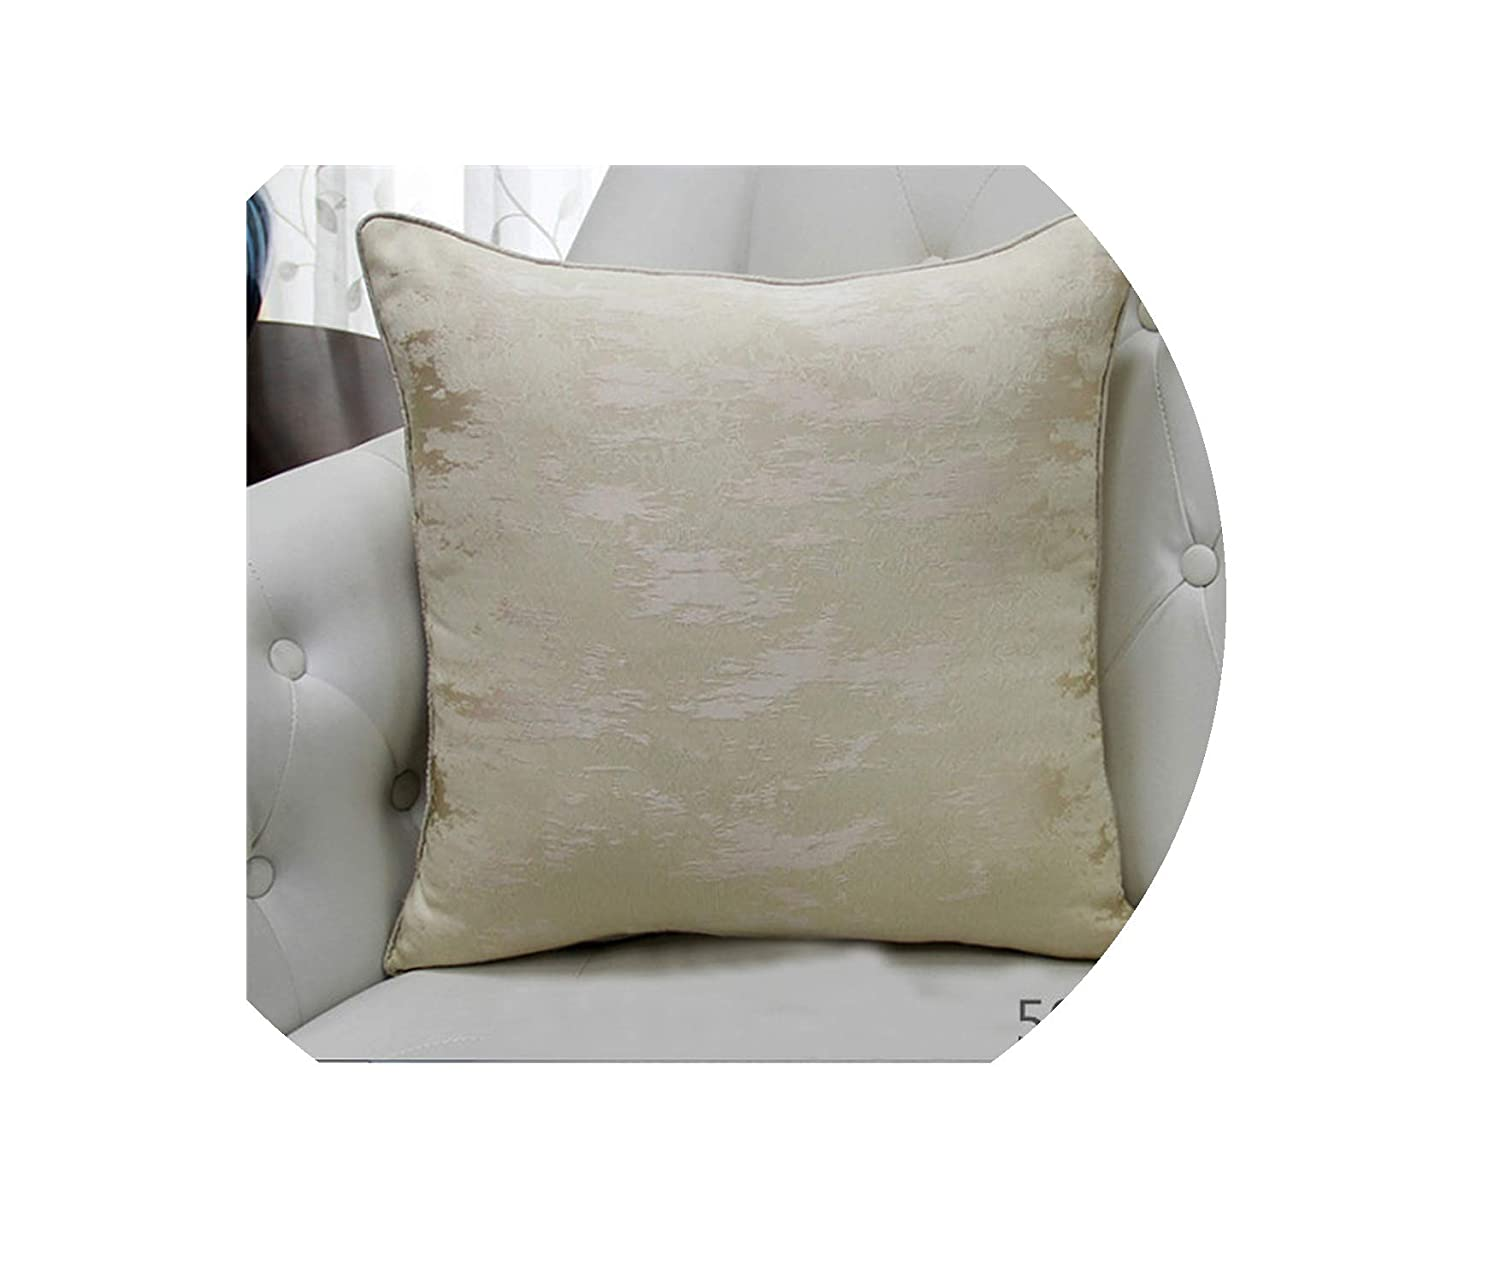 Amazon.com: Luxury Cushion Cover Throw Pillows Stone Texture ...